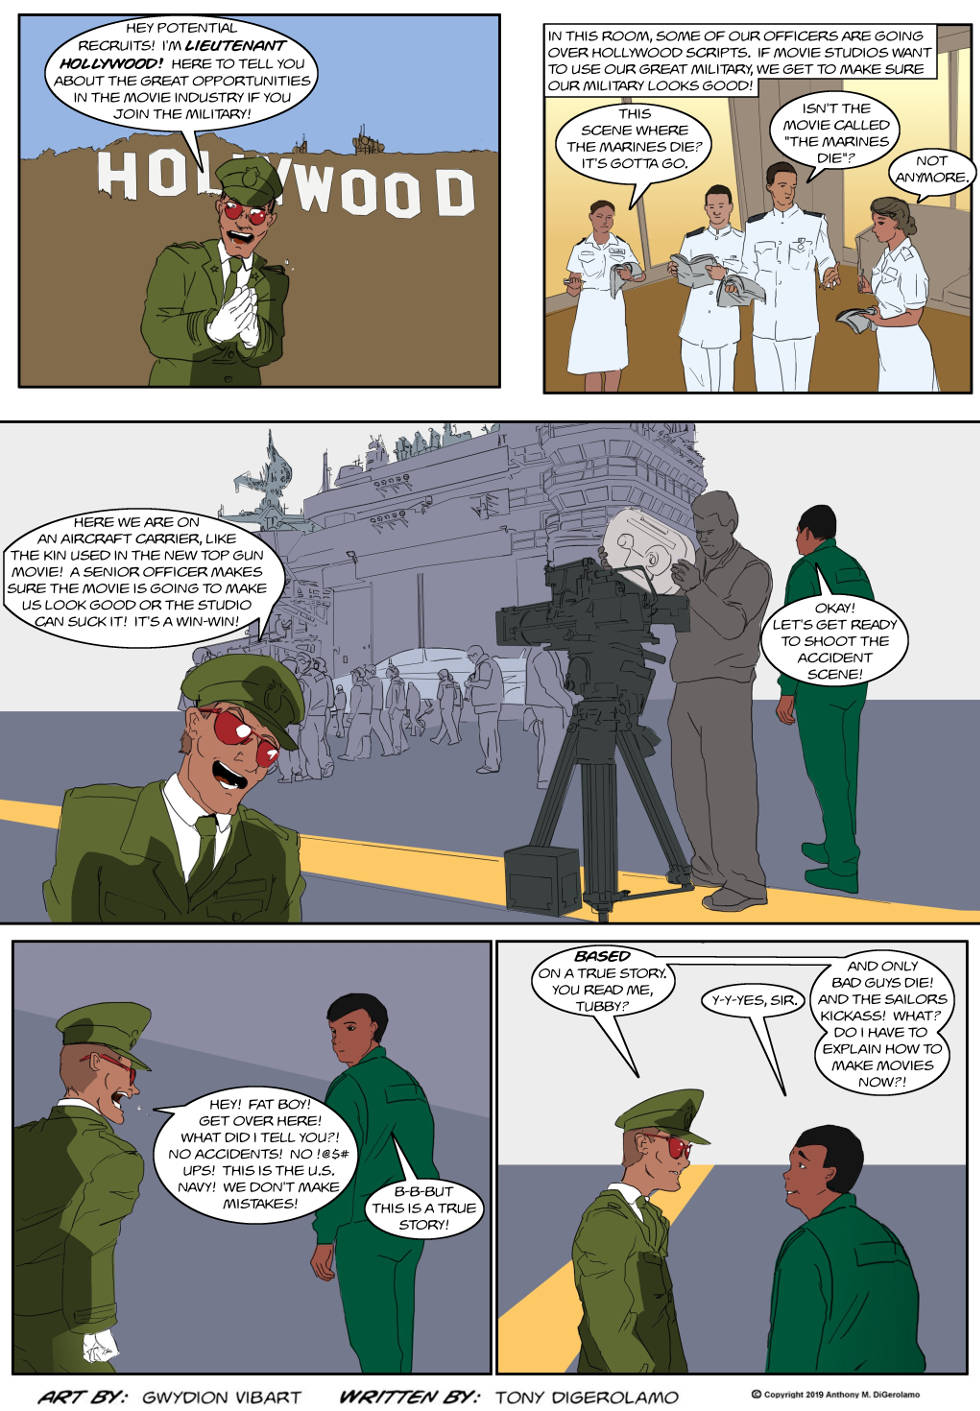 The Antiwar Comic:  There's No Business Like The Military